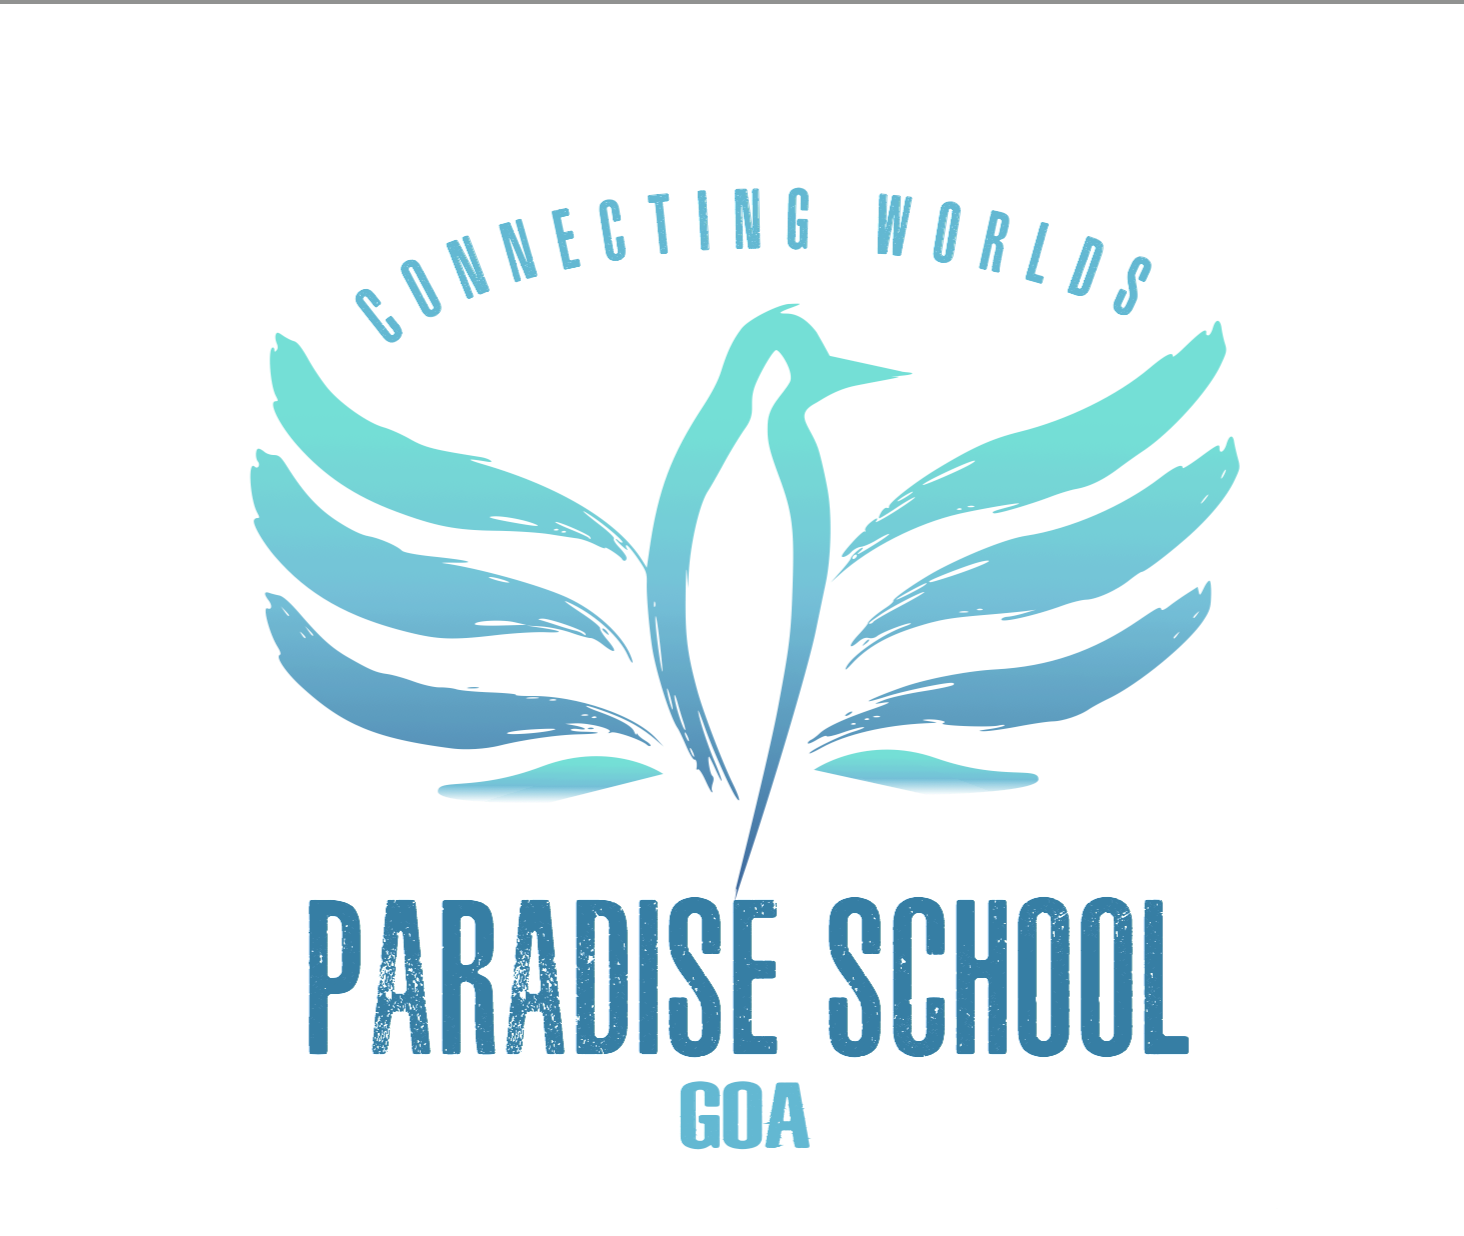 Paradise School North Goa, India